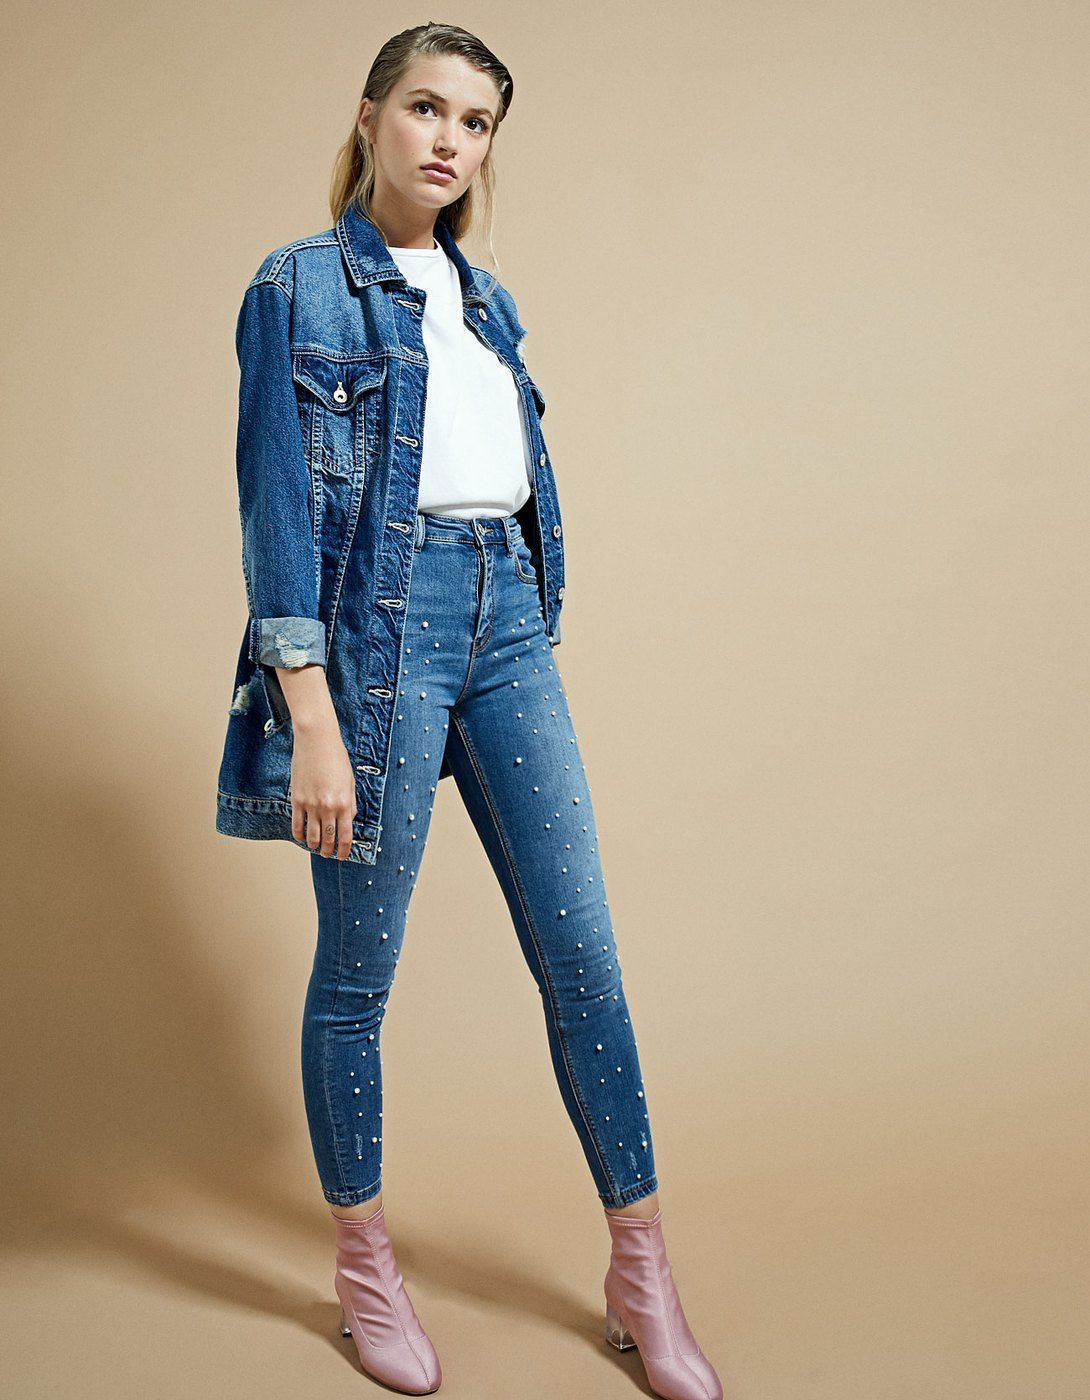 Denim super high waist perlas - Jeans | Stradivarius España